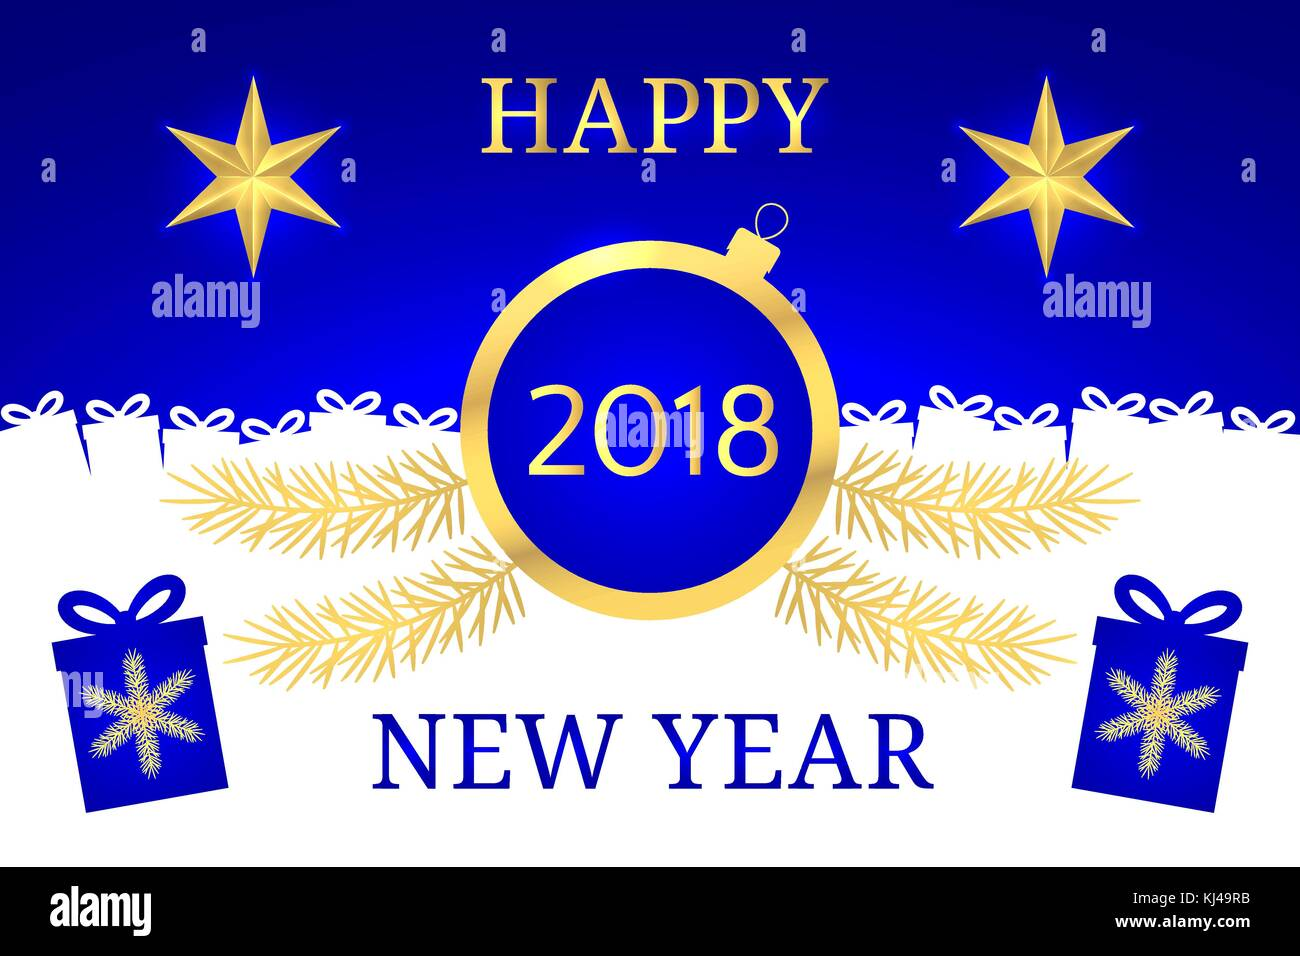 Happy New Year 2018. Vector Banner with New Year Greeting in Golden and Blue Color. Golden Shining Star, Toy and - Stock Vector